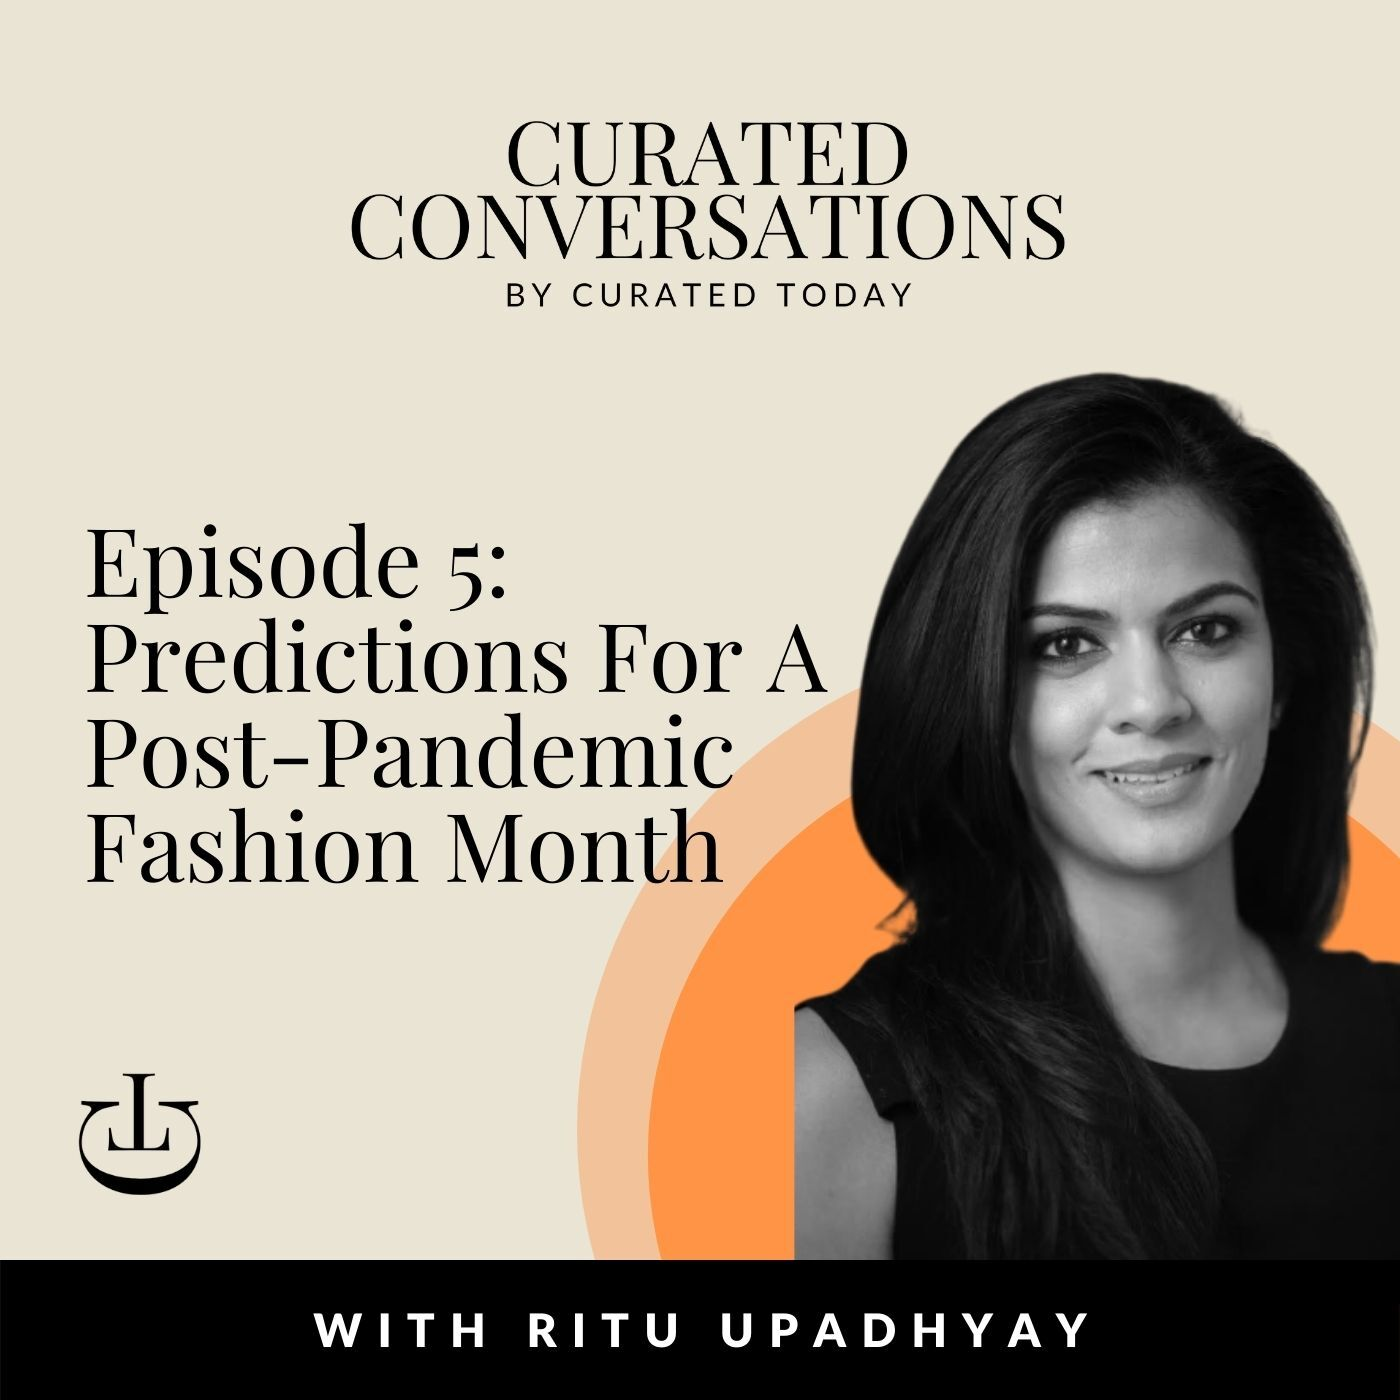 Predictions For A Post-Pandemic Fashion Month - With WWD Middle East Bureau Chief, Ritu Upadhyay